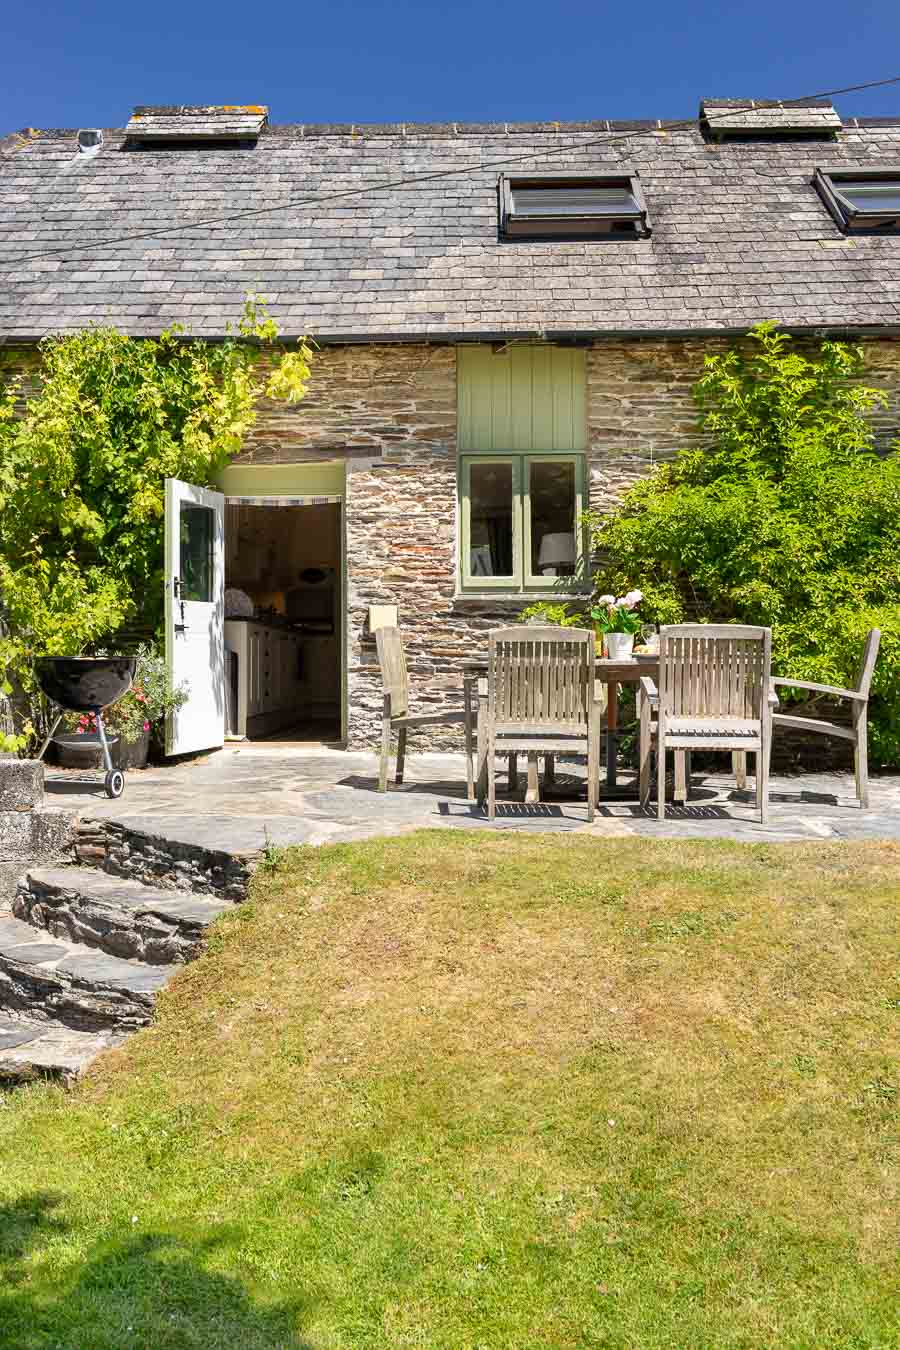 The Stables is a family holiday cottage set amongst 12 well-appointed holiday cottages with wonderful facilities for all ages (and all weathers!)